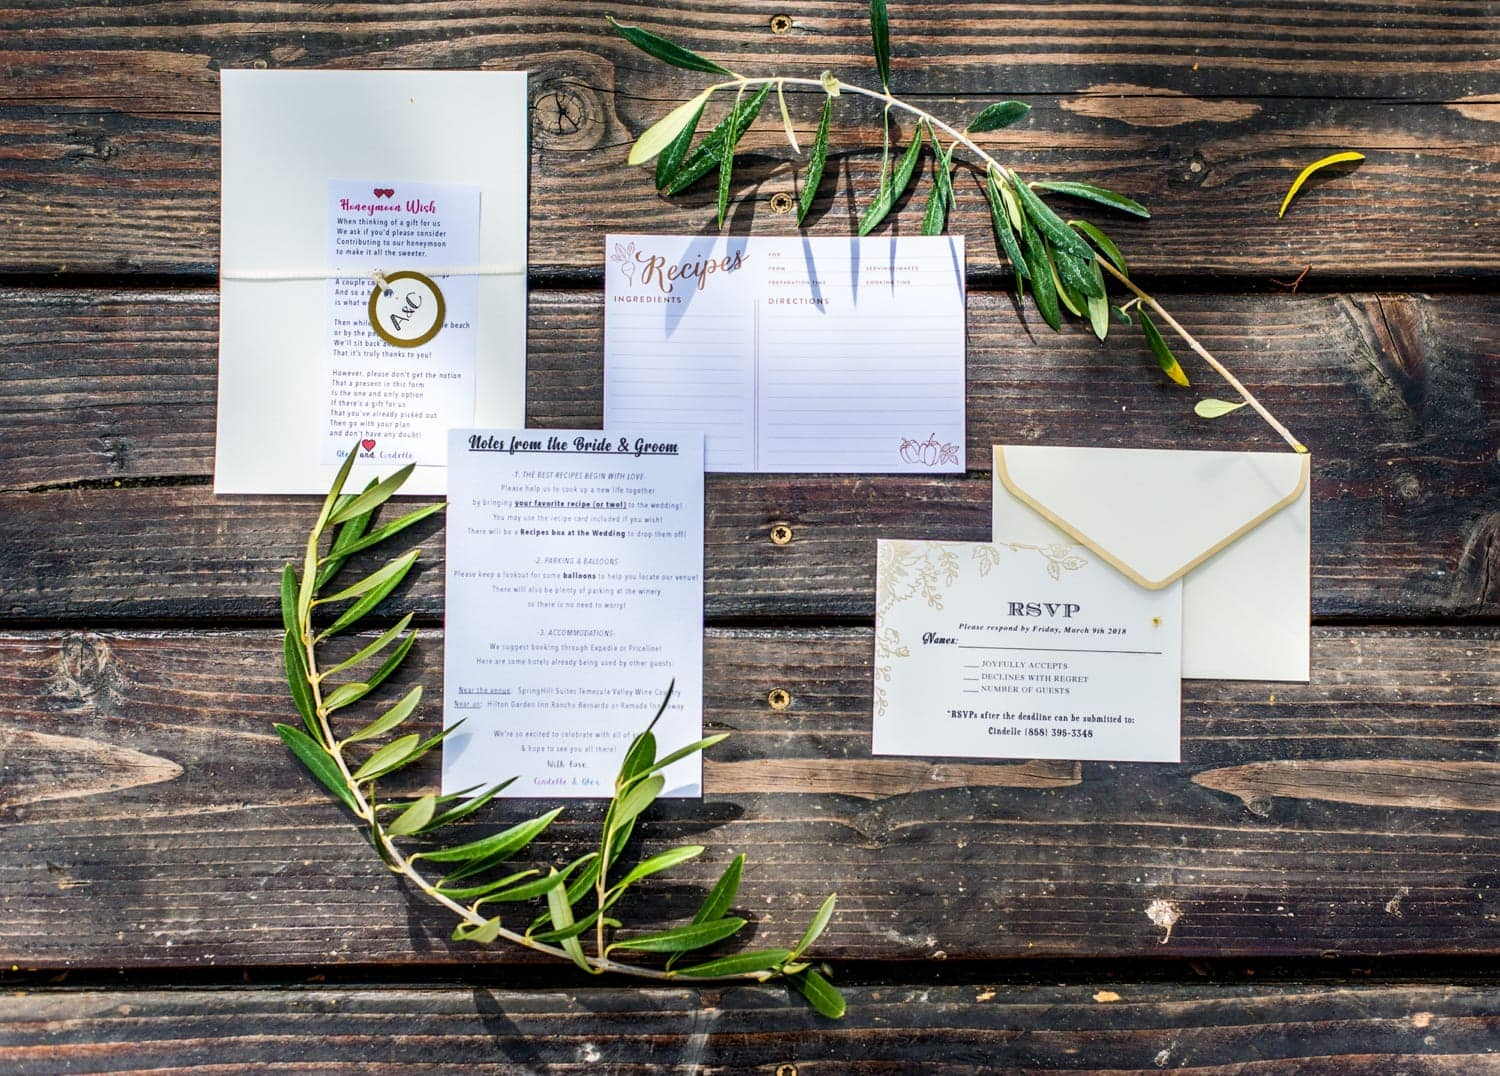 Wedding Invitations and RSVP cards laid on a table.